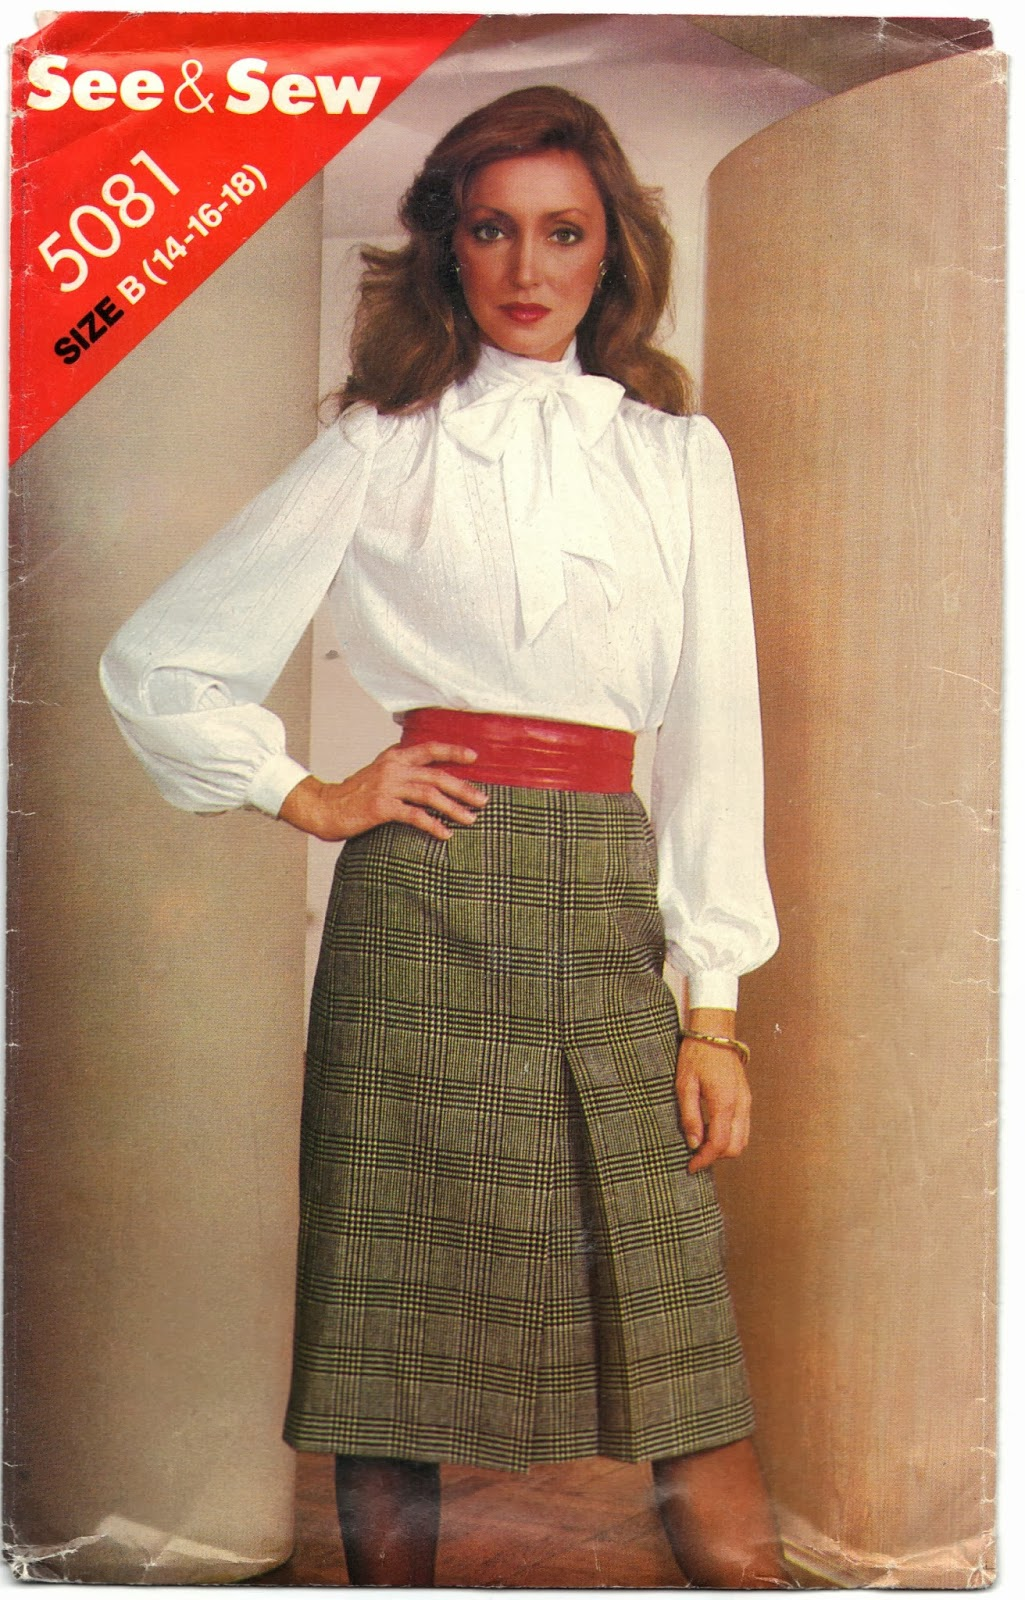 https://www.etsy.com/listing/181997010/15-off-madness-sale-misses-blouse-and?ref=shop_home_active_1&ga_search_query=5081